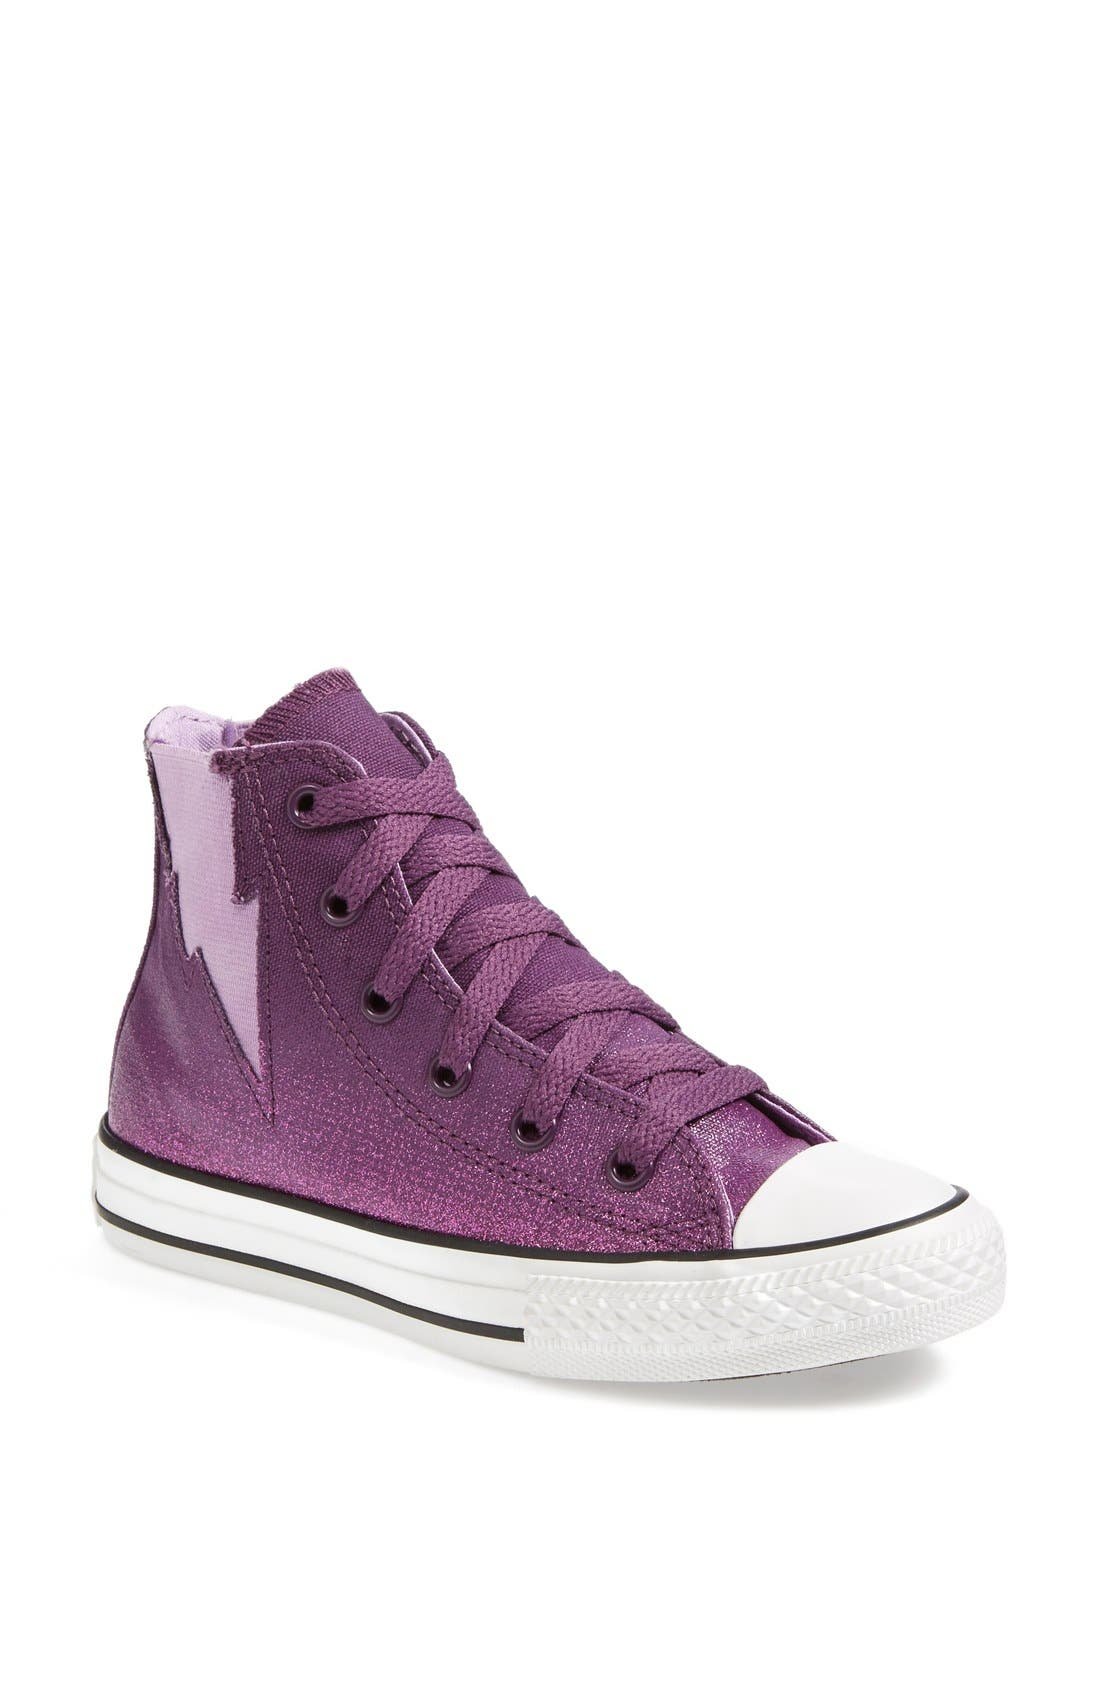 Alternate Image 1 Selected - Converse Chuck Taylor® All Star® 'Sparkle Wash Boltz' High Top Sneaker (Toddler, Little Kid & Big Kid)